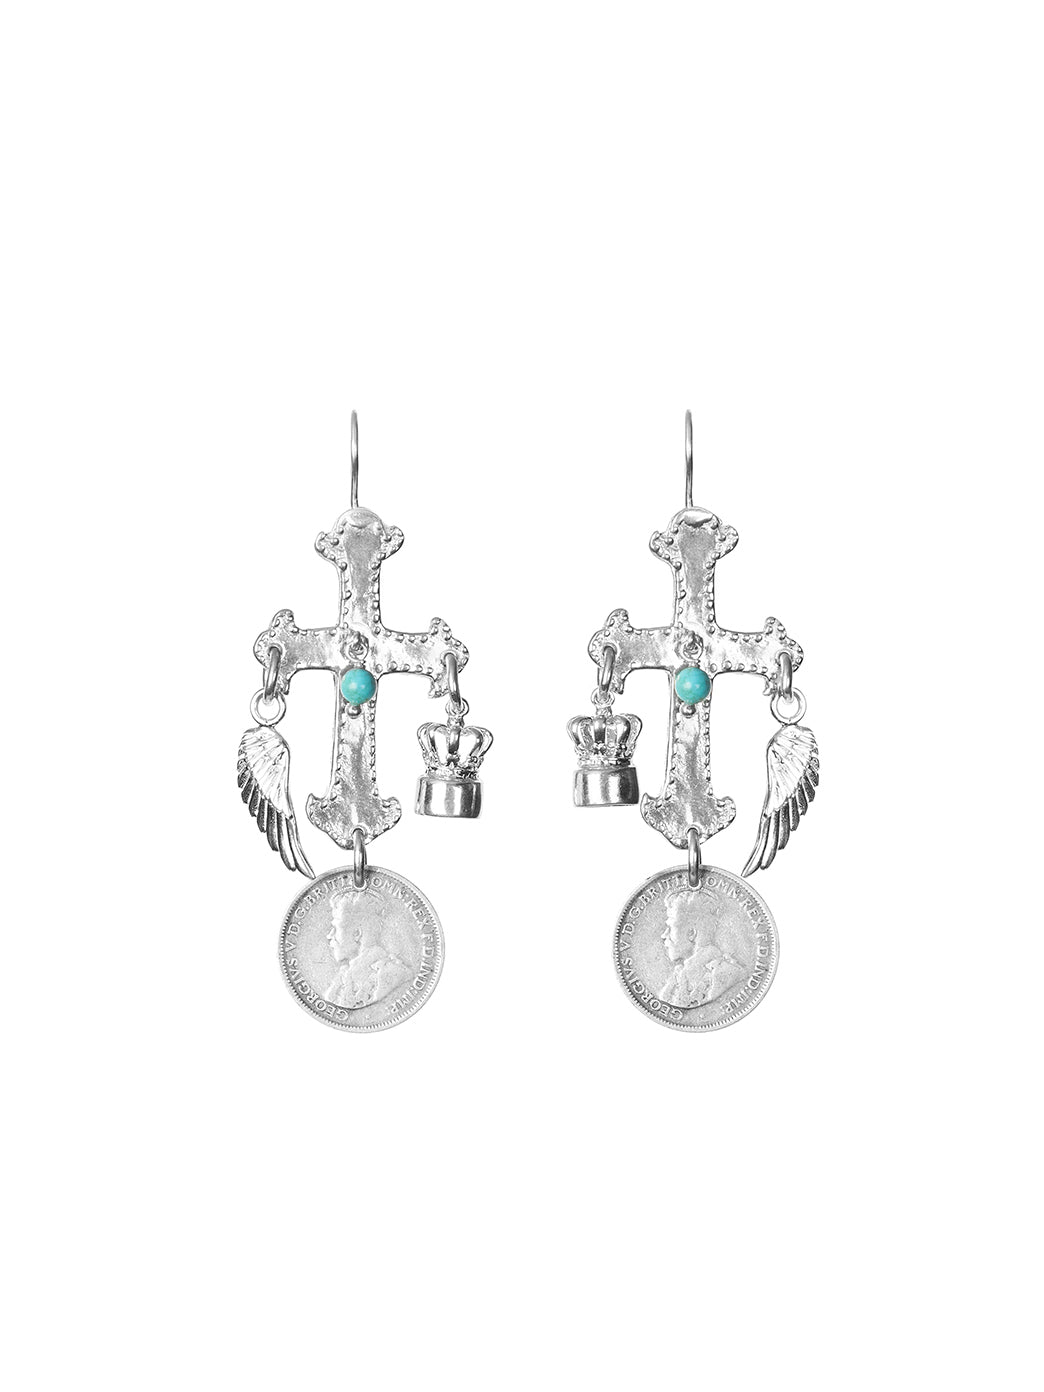 Fiorina Jewellery Antonietta Earrings Turquoise